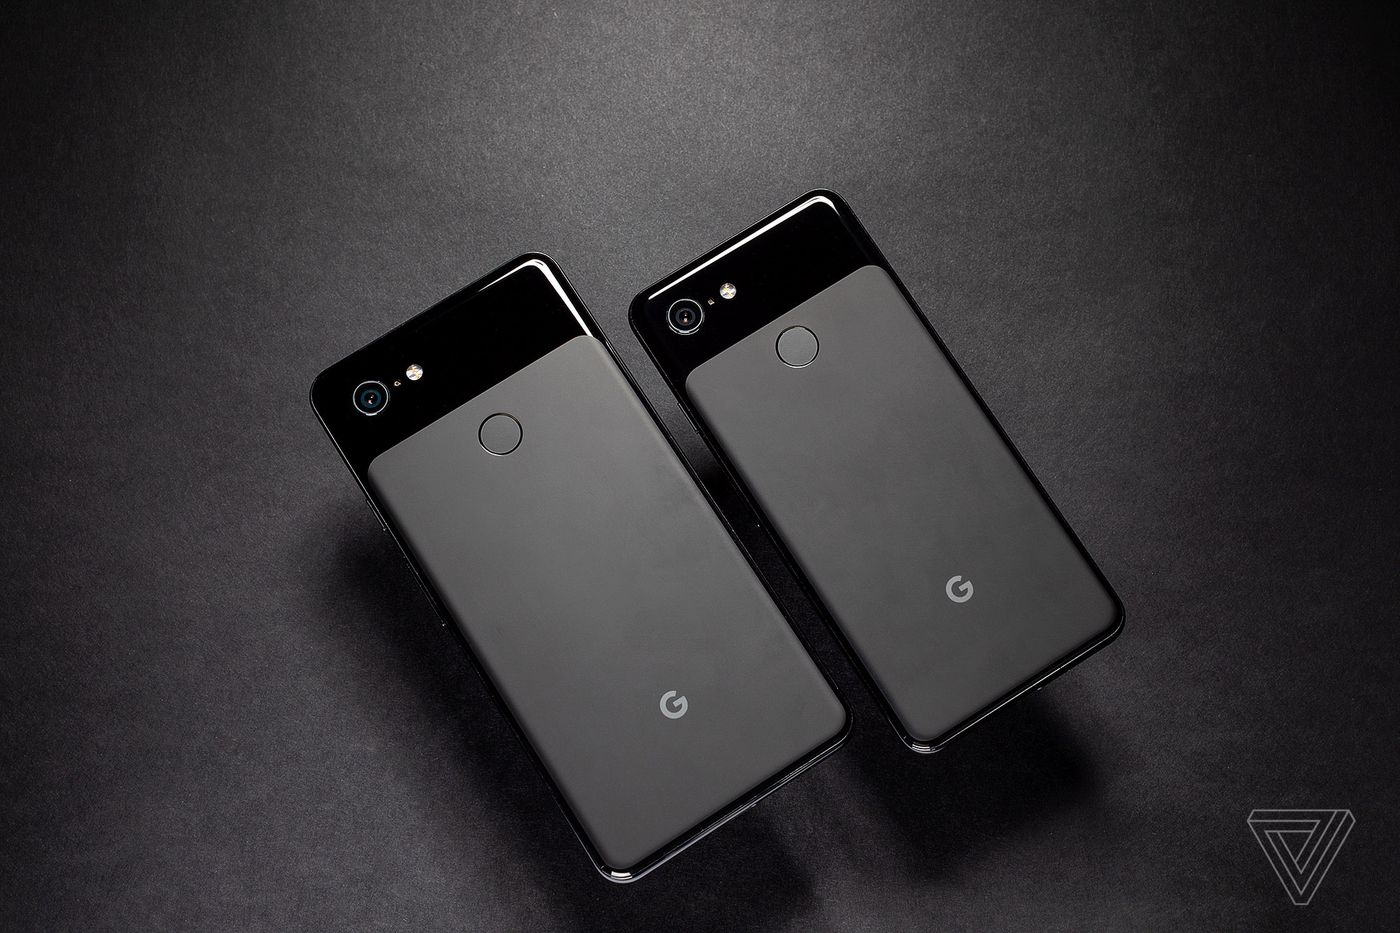 Google Pixel 3 and 3 XL review: the best camera gets a